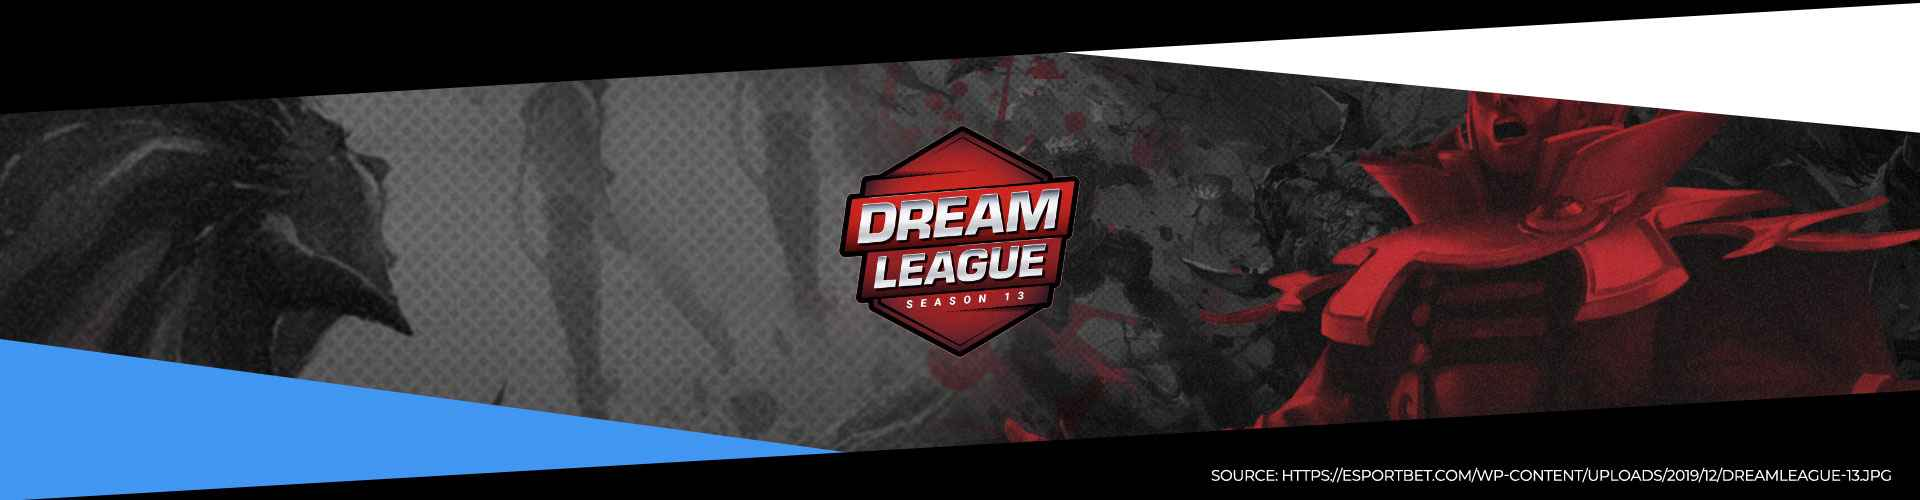 DreamLeague Seasons 13